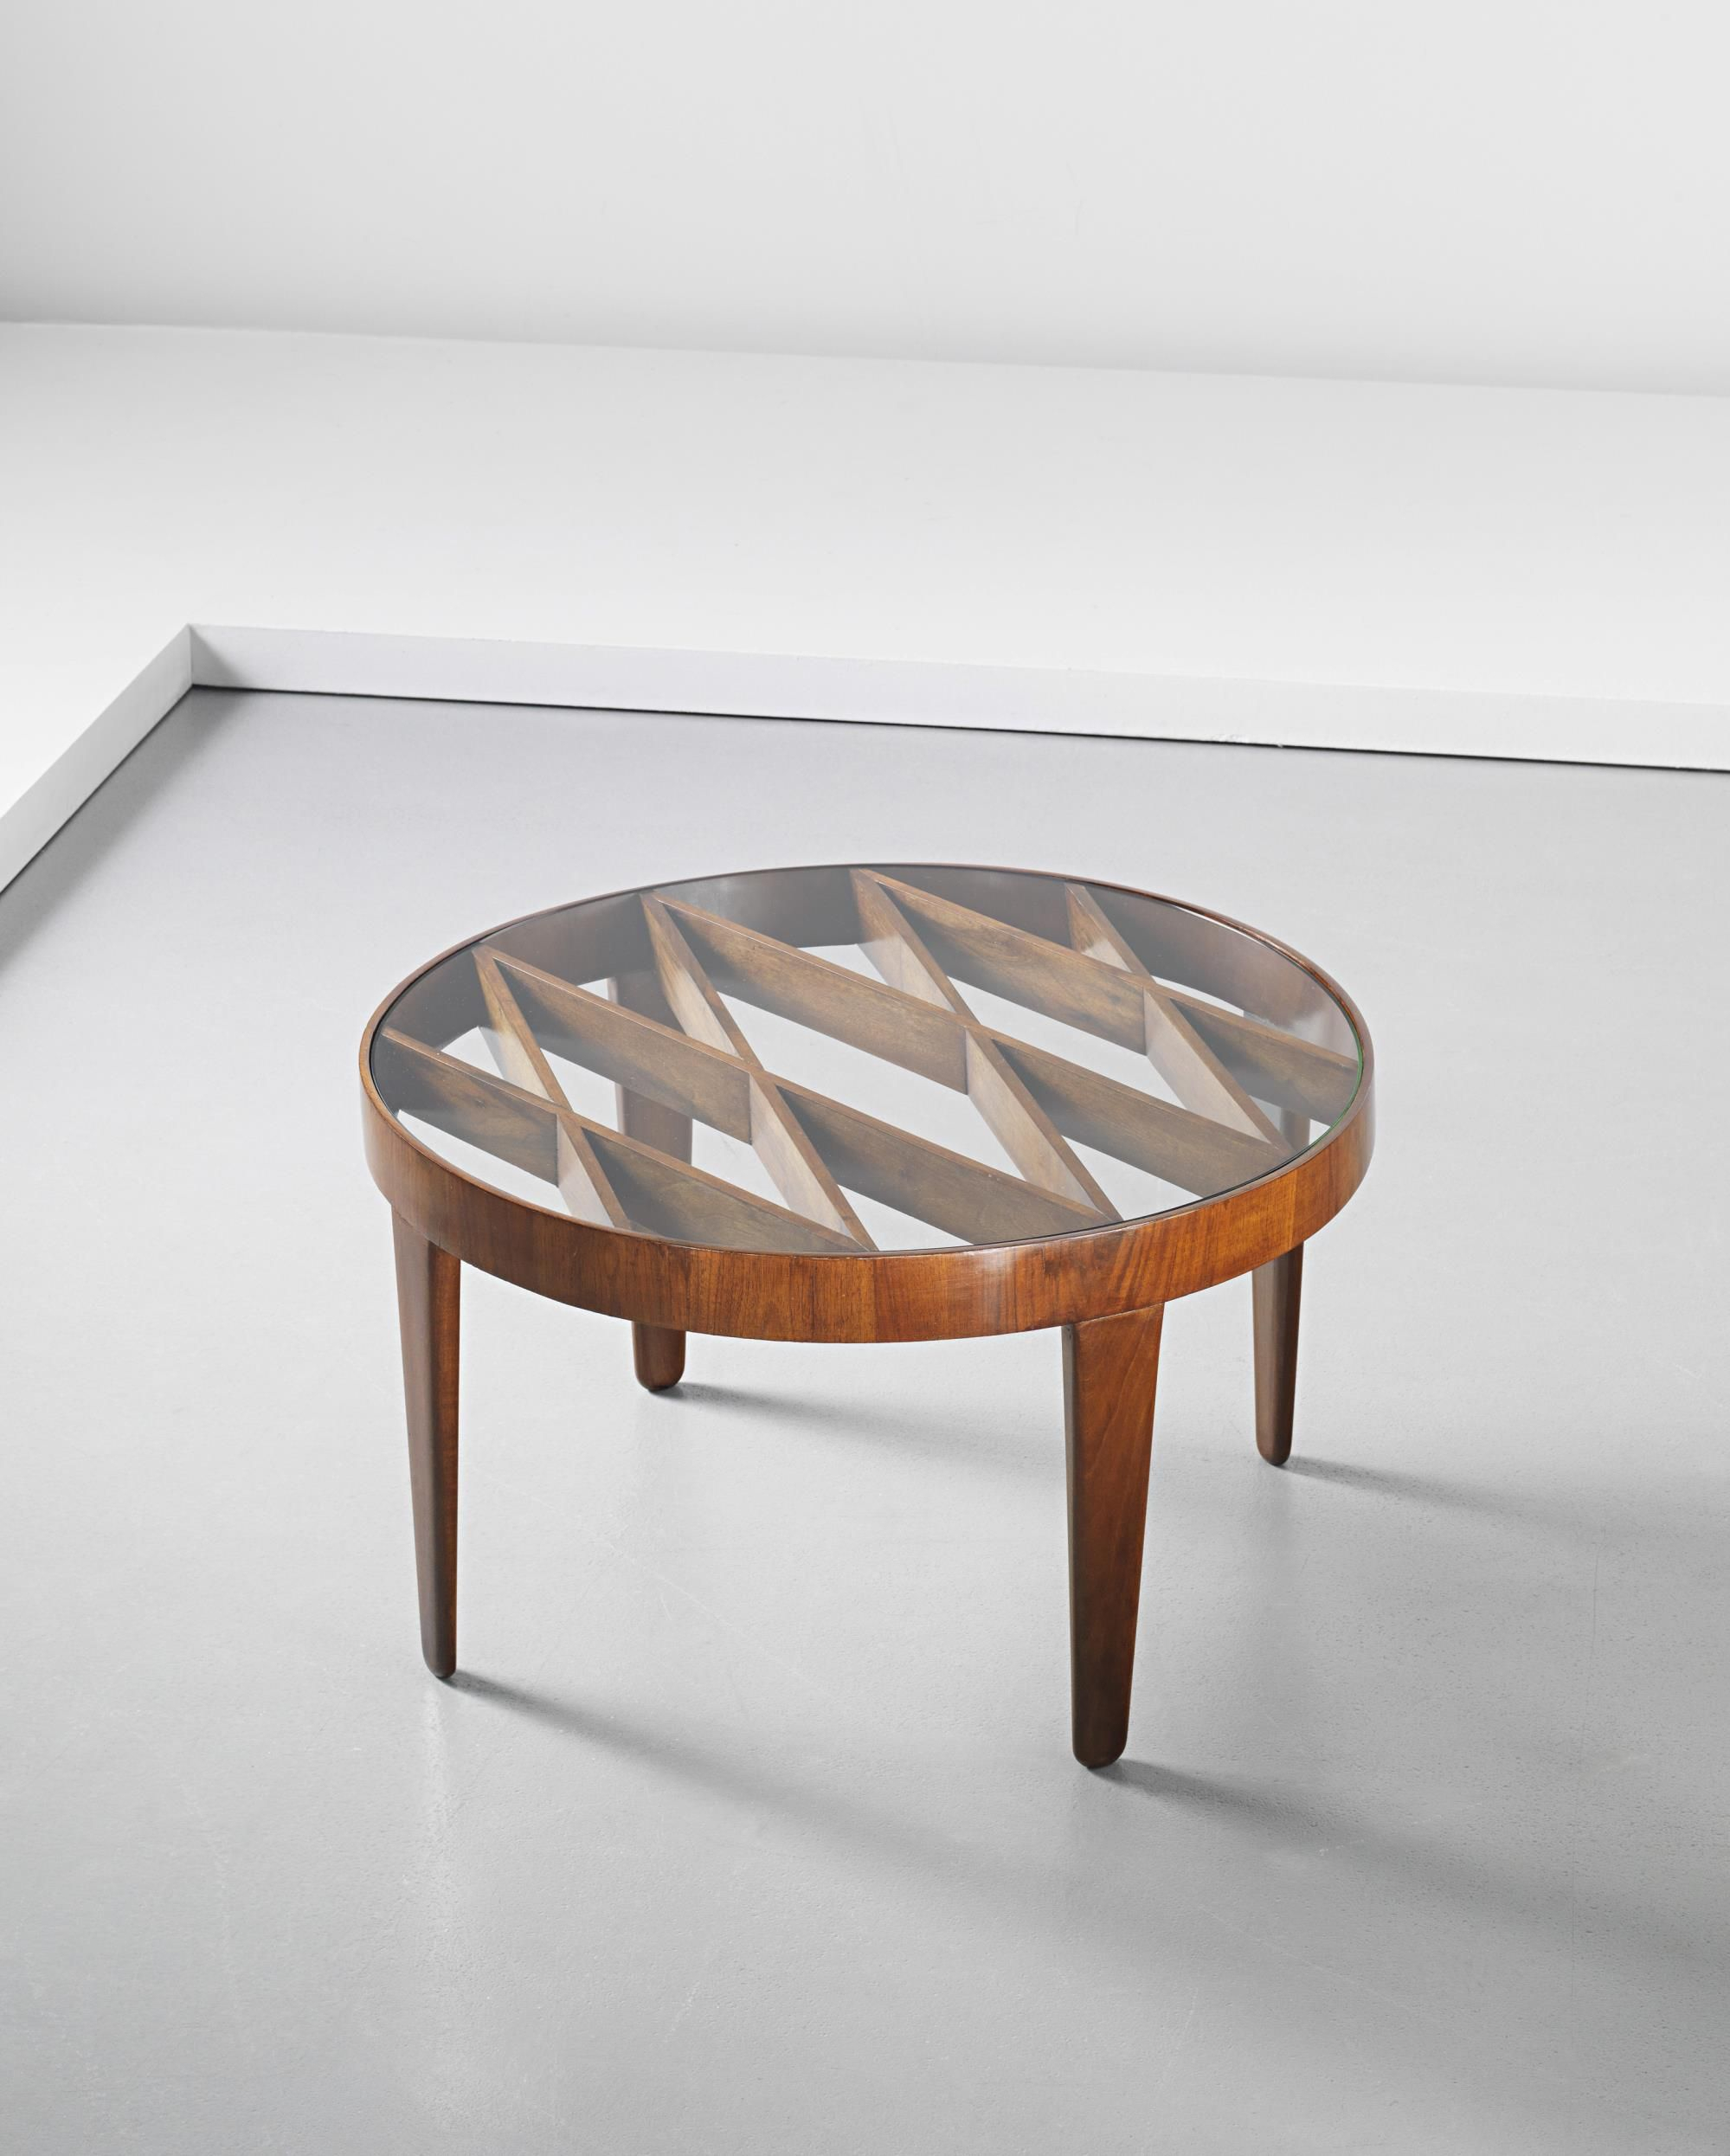 Phillips : Uk050212, Gio Ponti, Coffee Table | Interior | Pinterest pertaining to Phillip Brass Console Tables (Image 23 of 30)